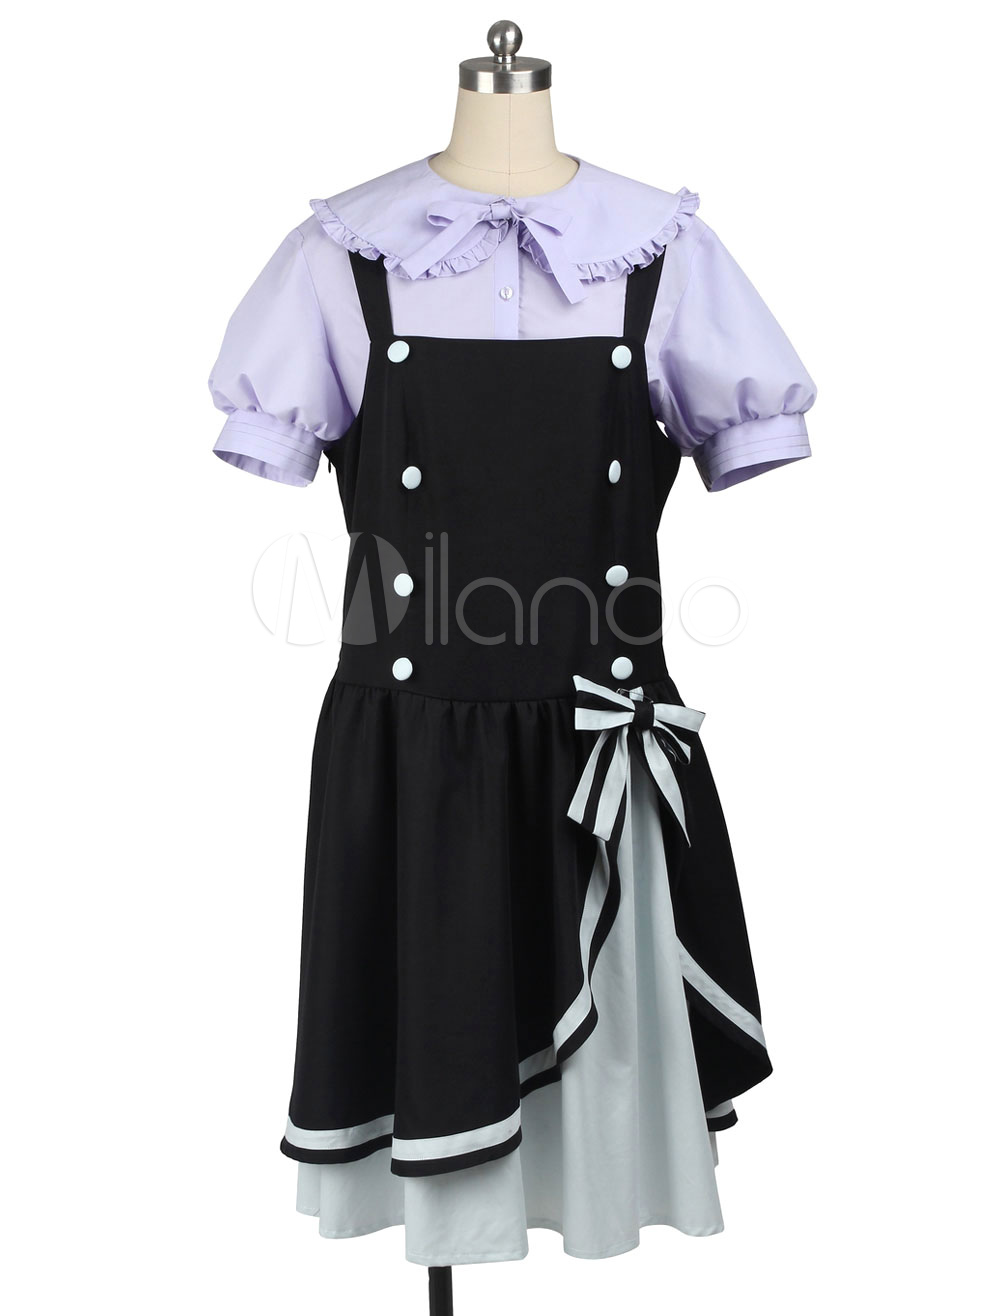 Buy Love, Chunibyo %26 Other Delusions! Rikka Takanashi Lolita Dress Cosplay Costume for $121.99 in Milanoo store